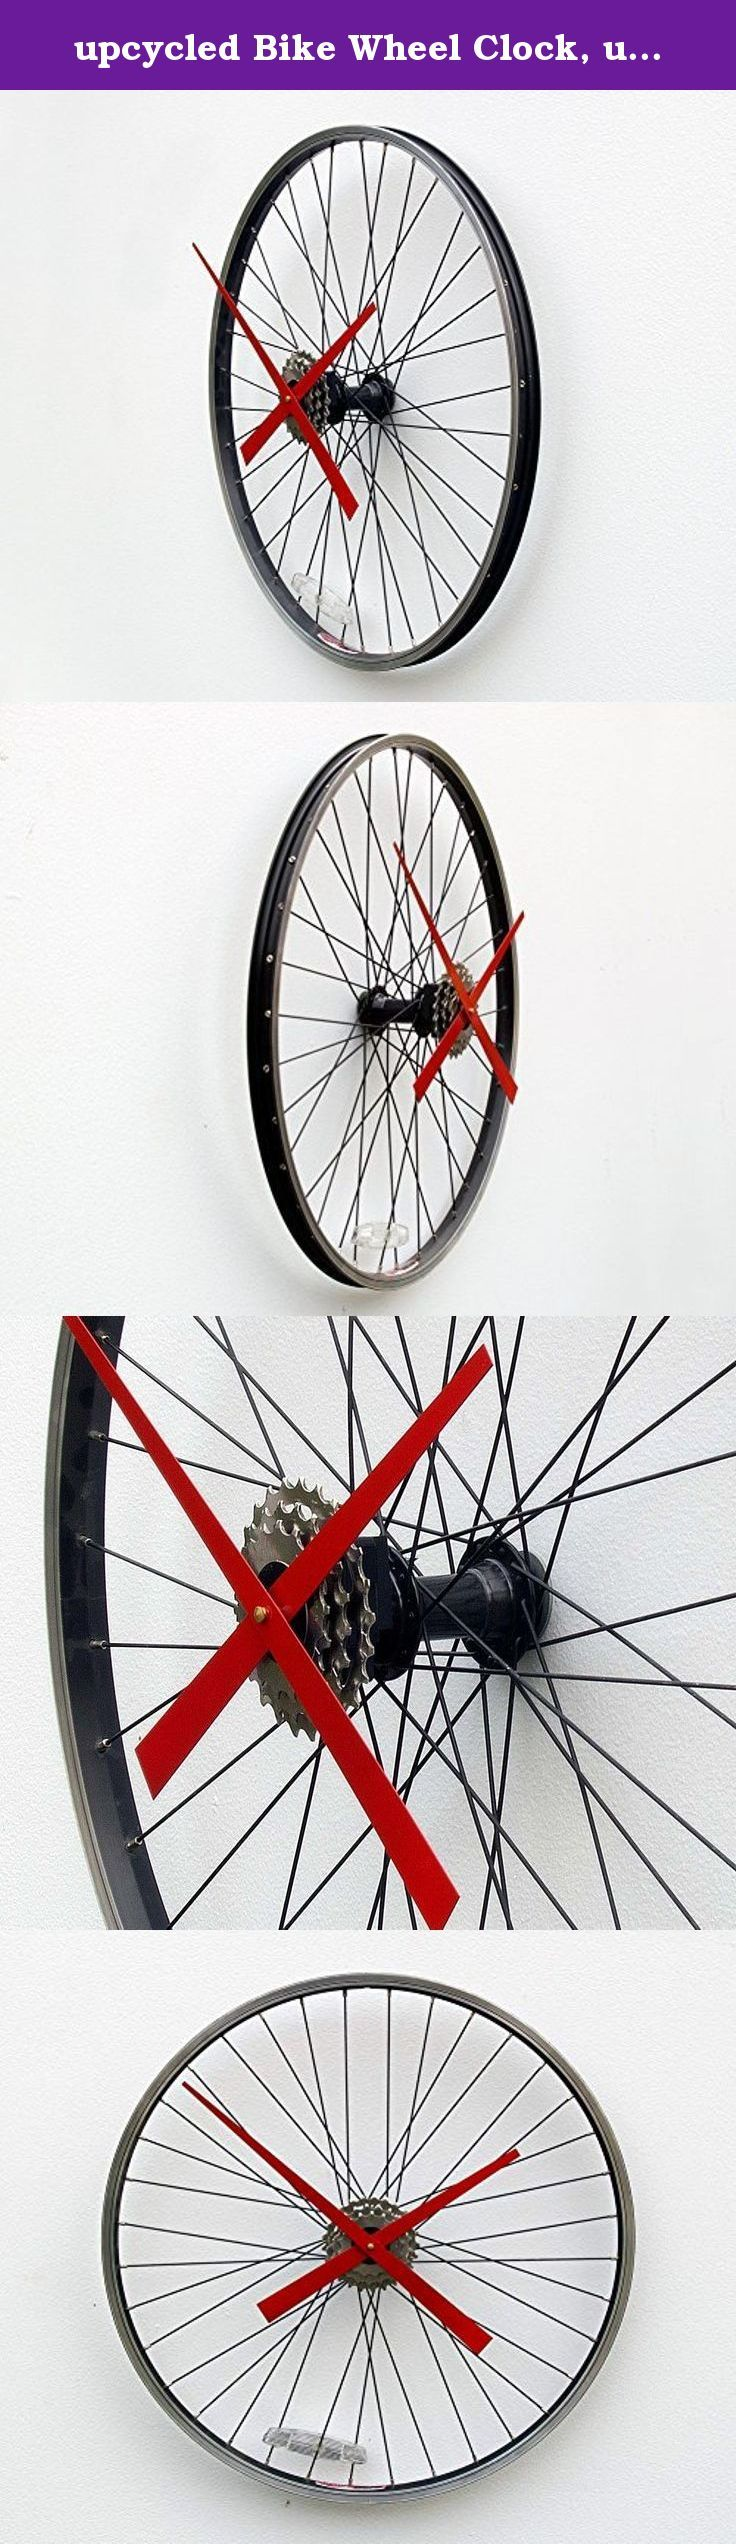 upcycled Bike Wheel Clock, unique large wall clock, bike clock, bicycle wheel clock, industrial wall clock, cyclist clock, upcycled bike parts clock, cycle parts clock. This clock was created from a recycled aluminum bike wheel. The wheel mounts directly to the wall through the hub using a hollow wall anchor and gives the illusion that it is floating off the wall. The clock movement is a high torque quartz movement and is attached to a set of rear cassette gears to conceal the movement…